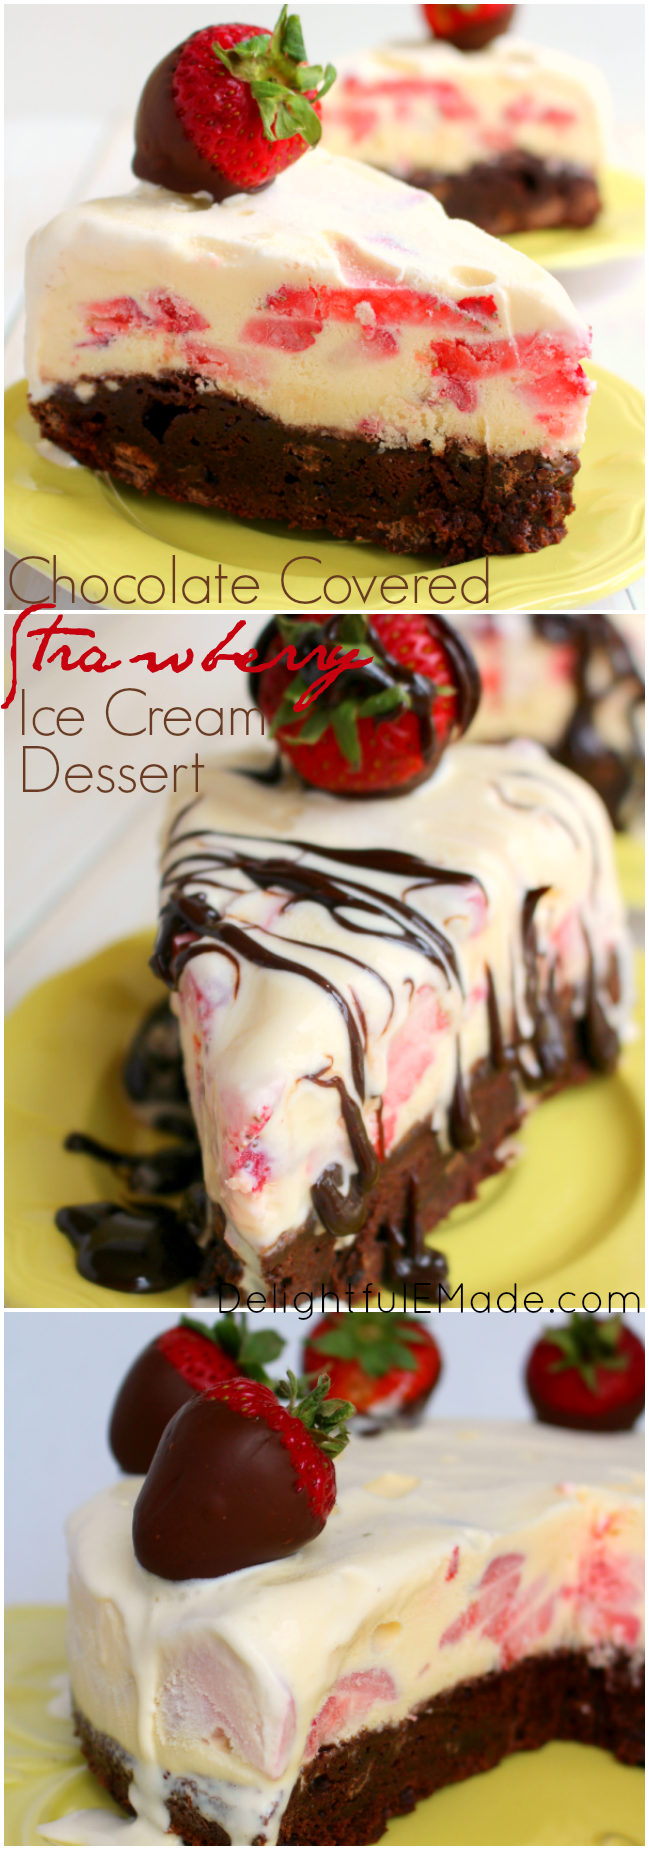 ... vanilla ice cream with fresh strawberries and a fudge brownie crust